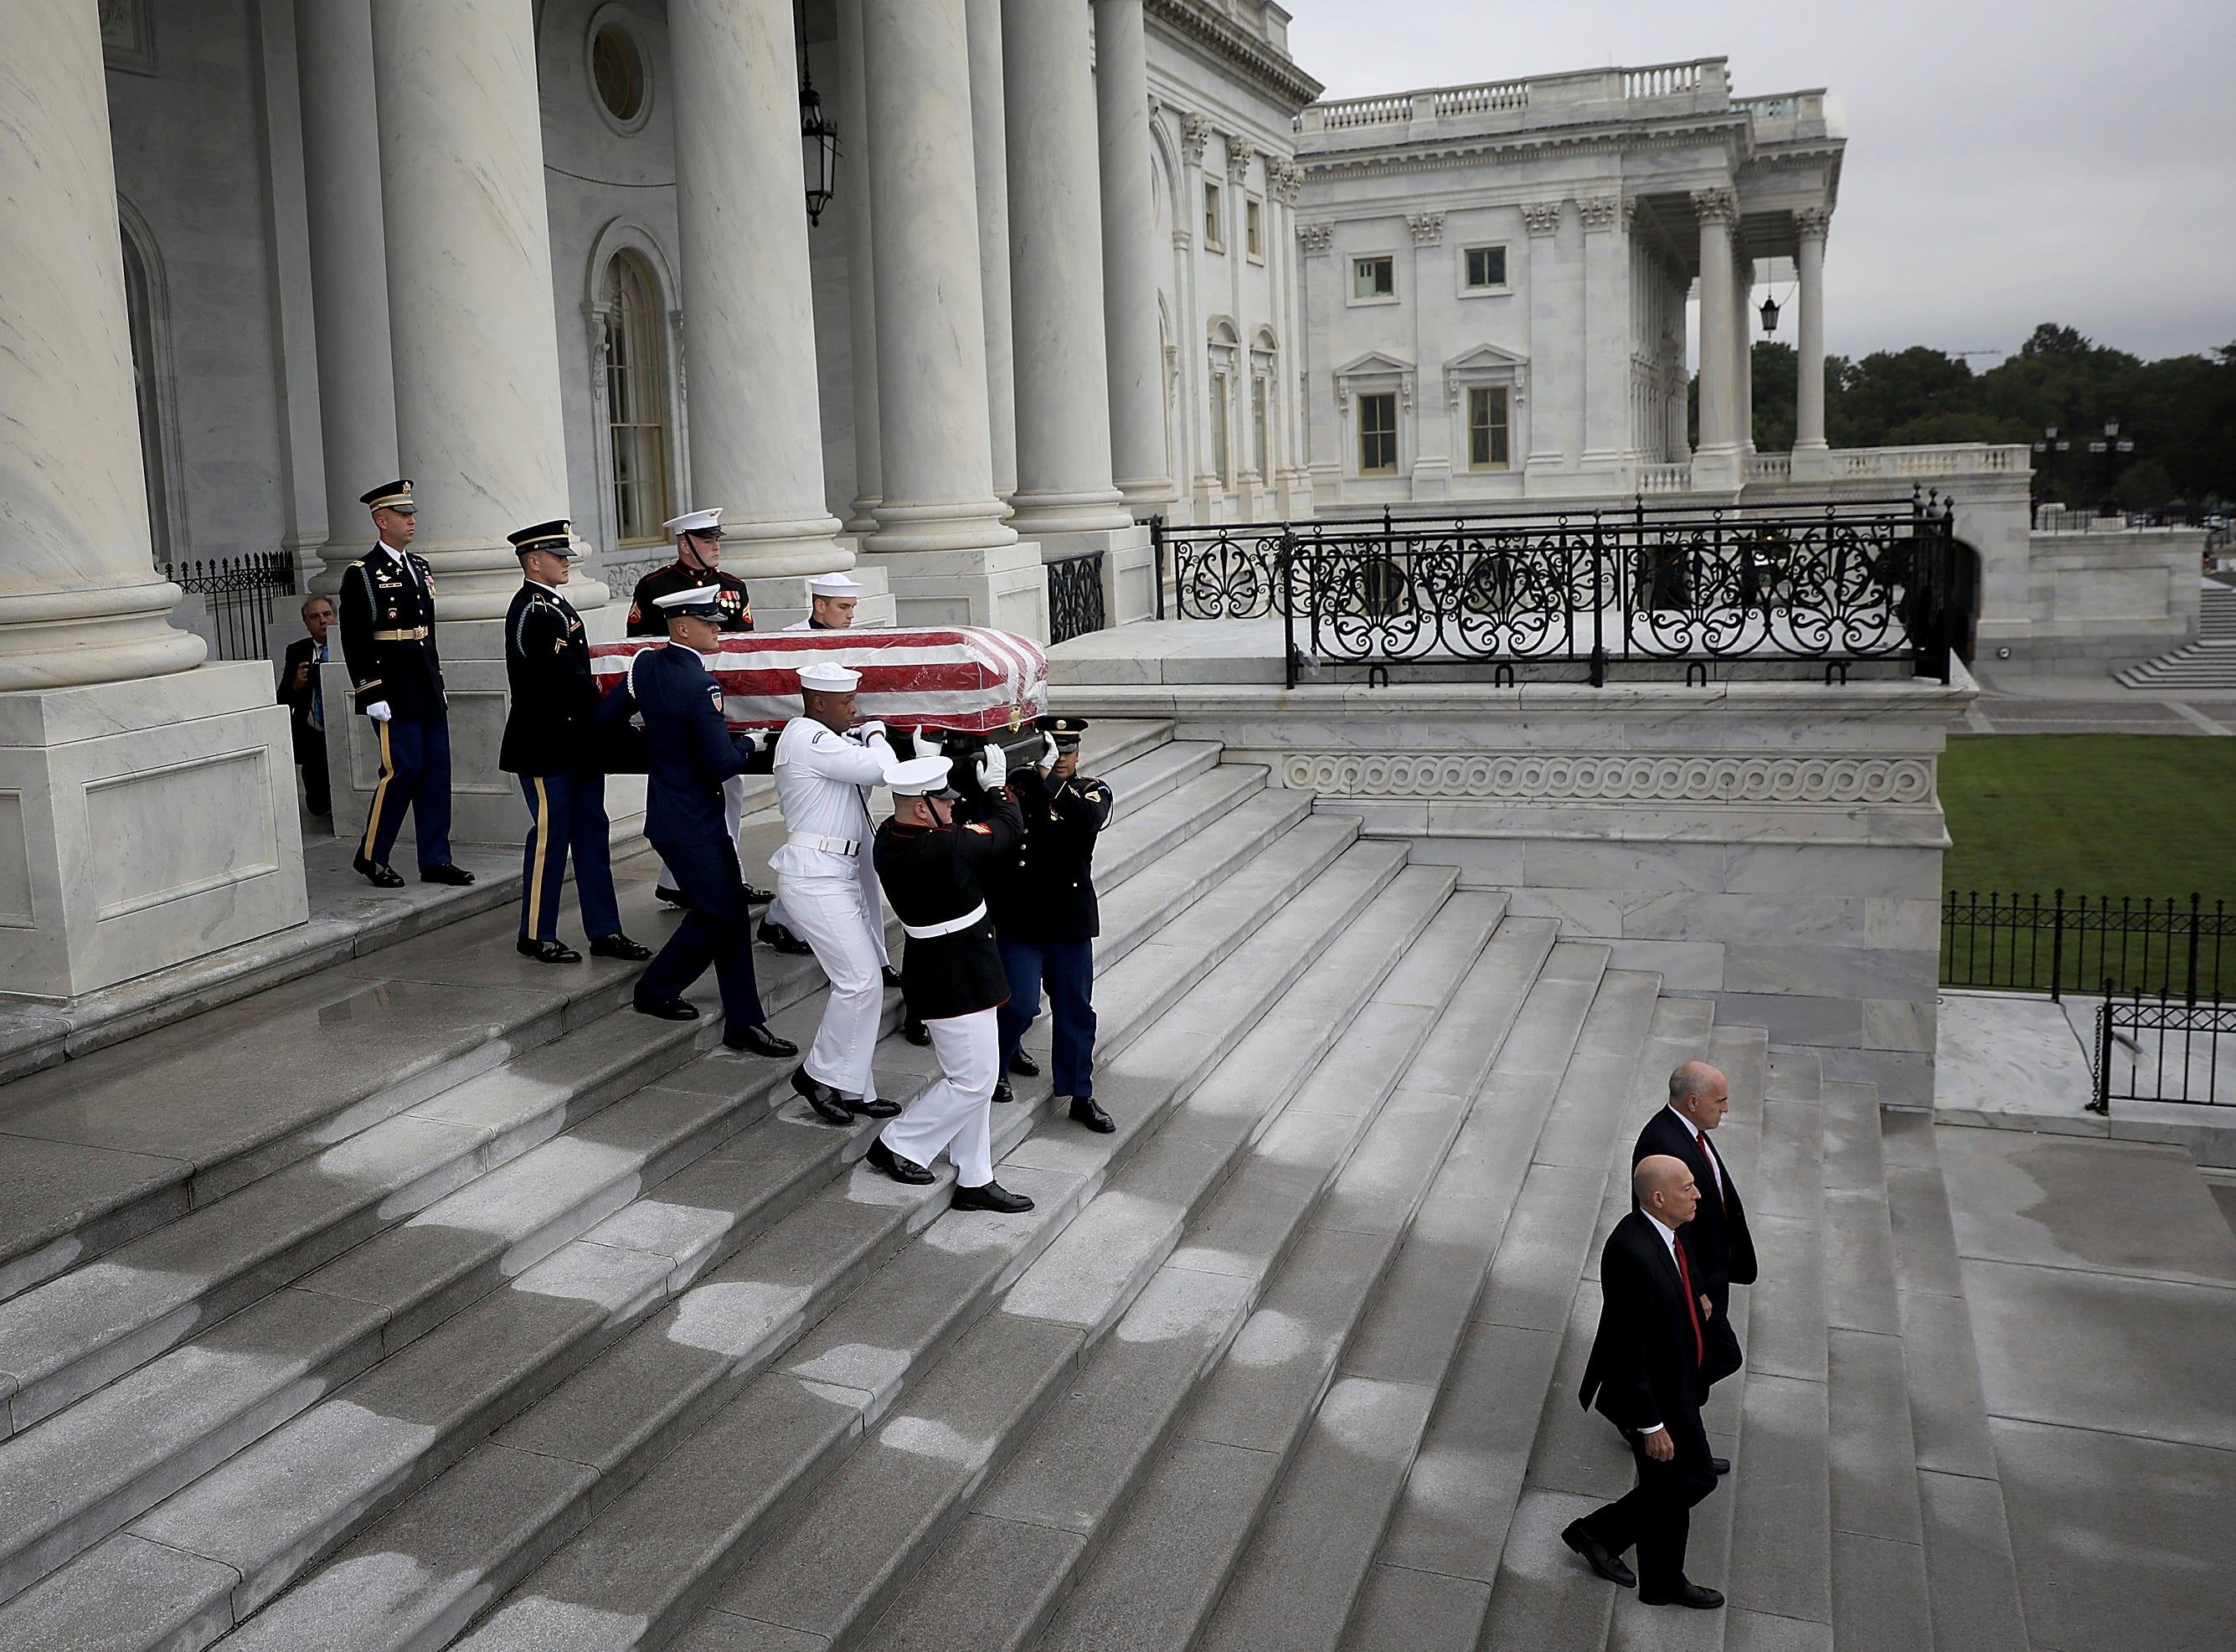 A military honor guard team carries the casket of Sen. John McCain, R-Ariz., from the U.S. Capitol, Saturday, Sept. 1, 2018 in Washington.  (Win McNamee/Pool photo via AP)